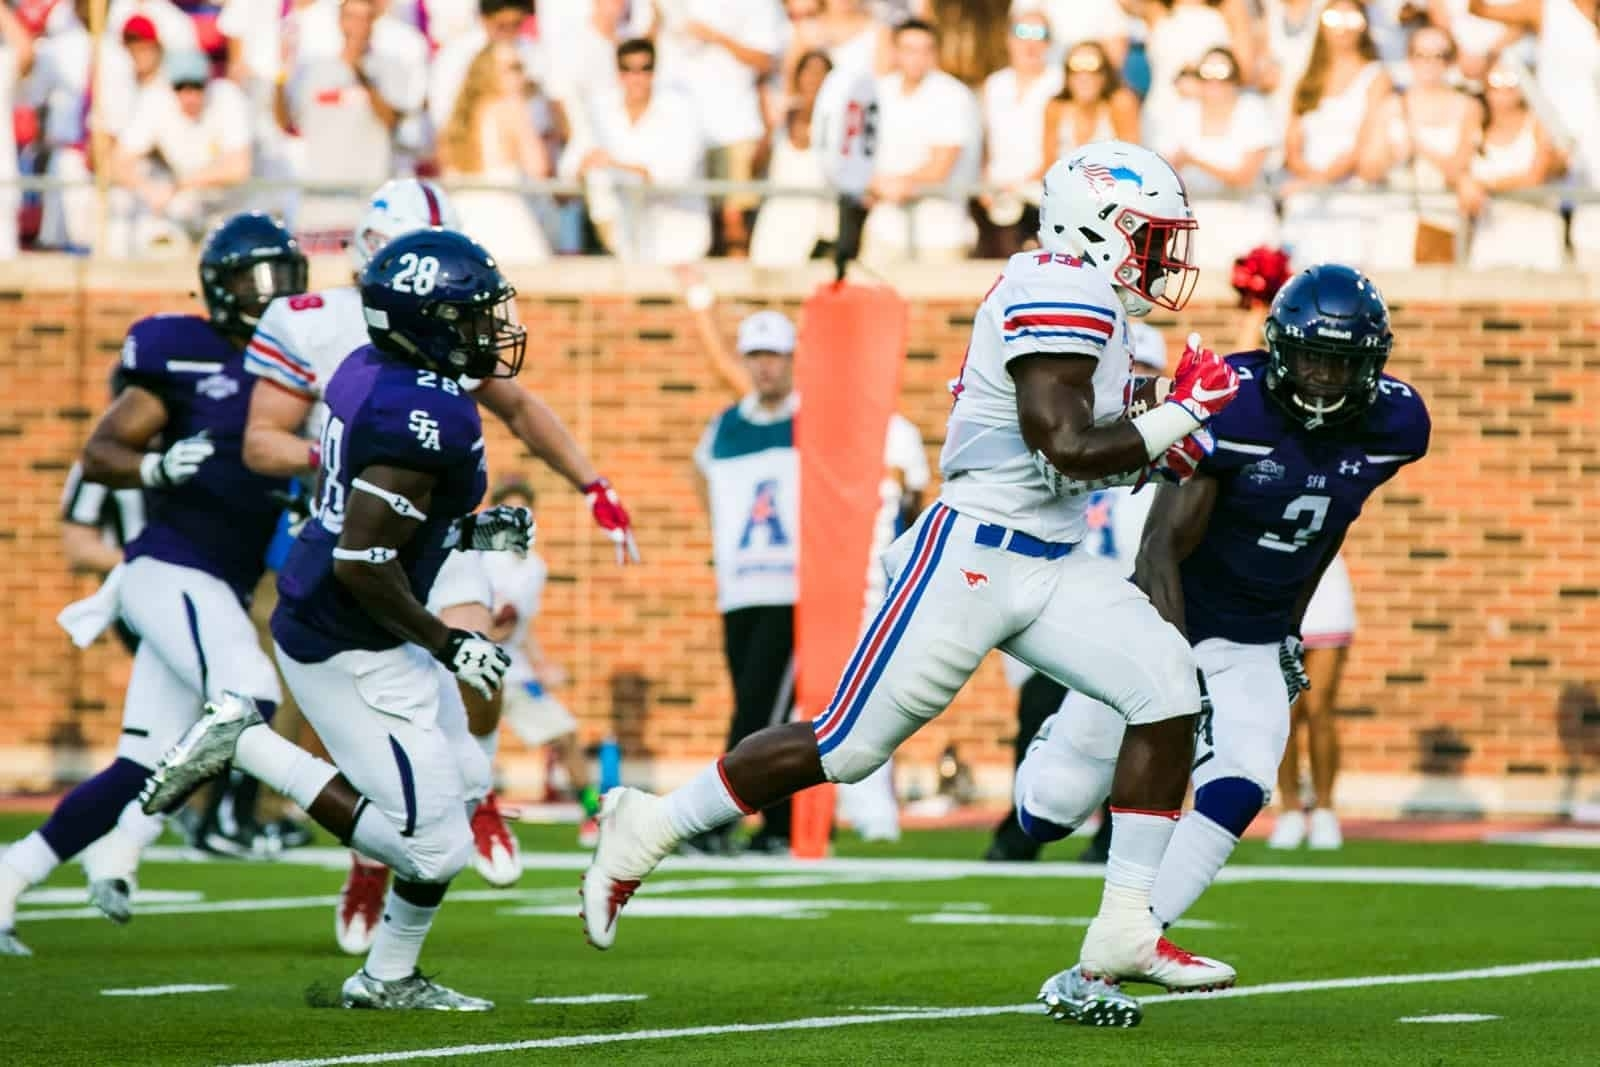 Smu To Host Stephen F. Austin In 2020 with Stephen F Austin Spring 2020